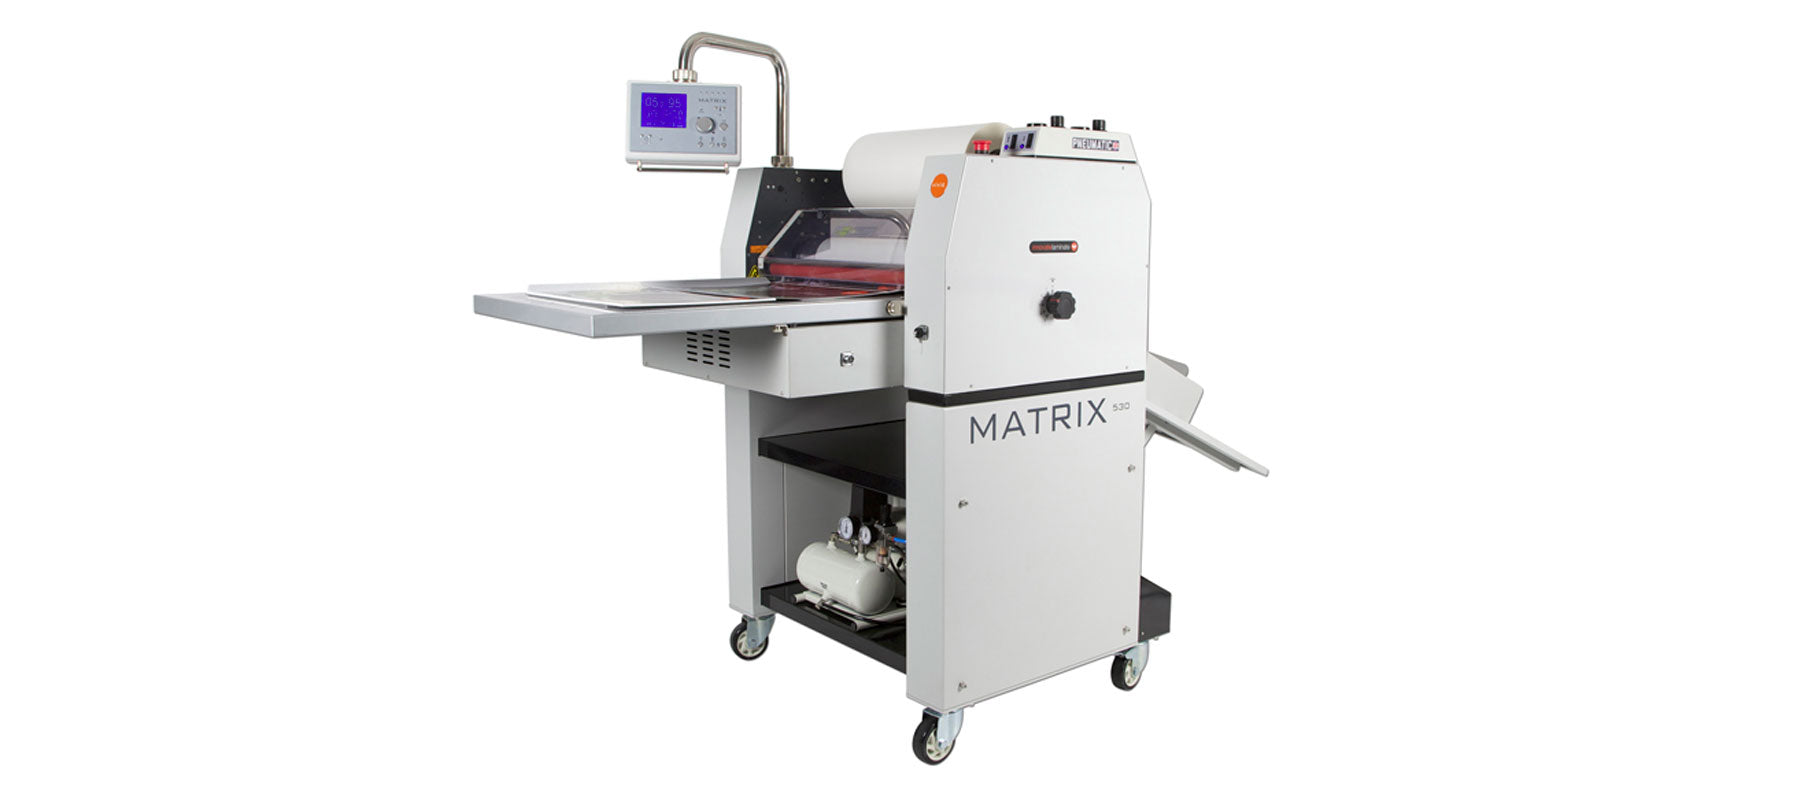 Warwick Printing get the Matrix 530P Laminator